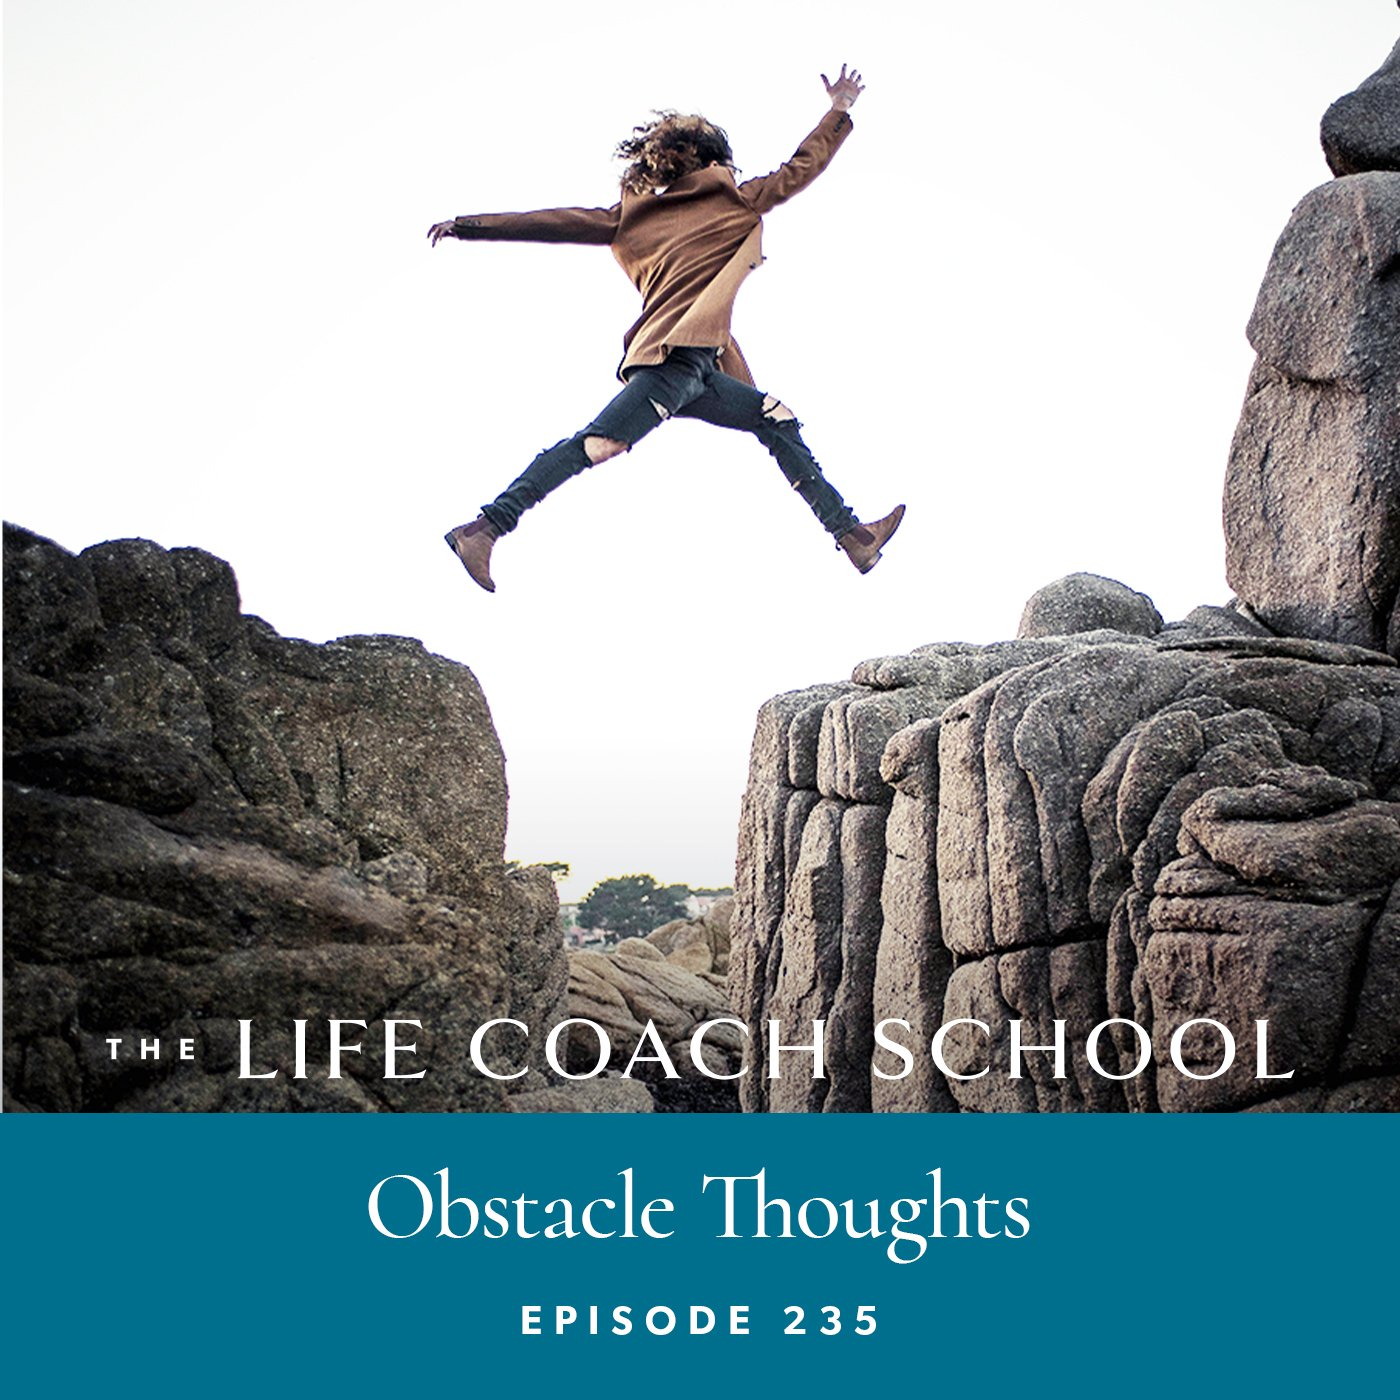 The Life Coach School Podcast with Brooke Castillo | Episode 235 | Obstacle Thoughts